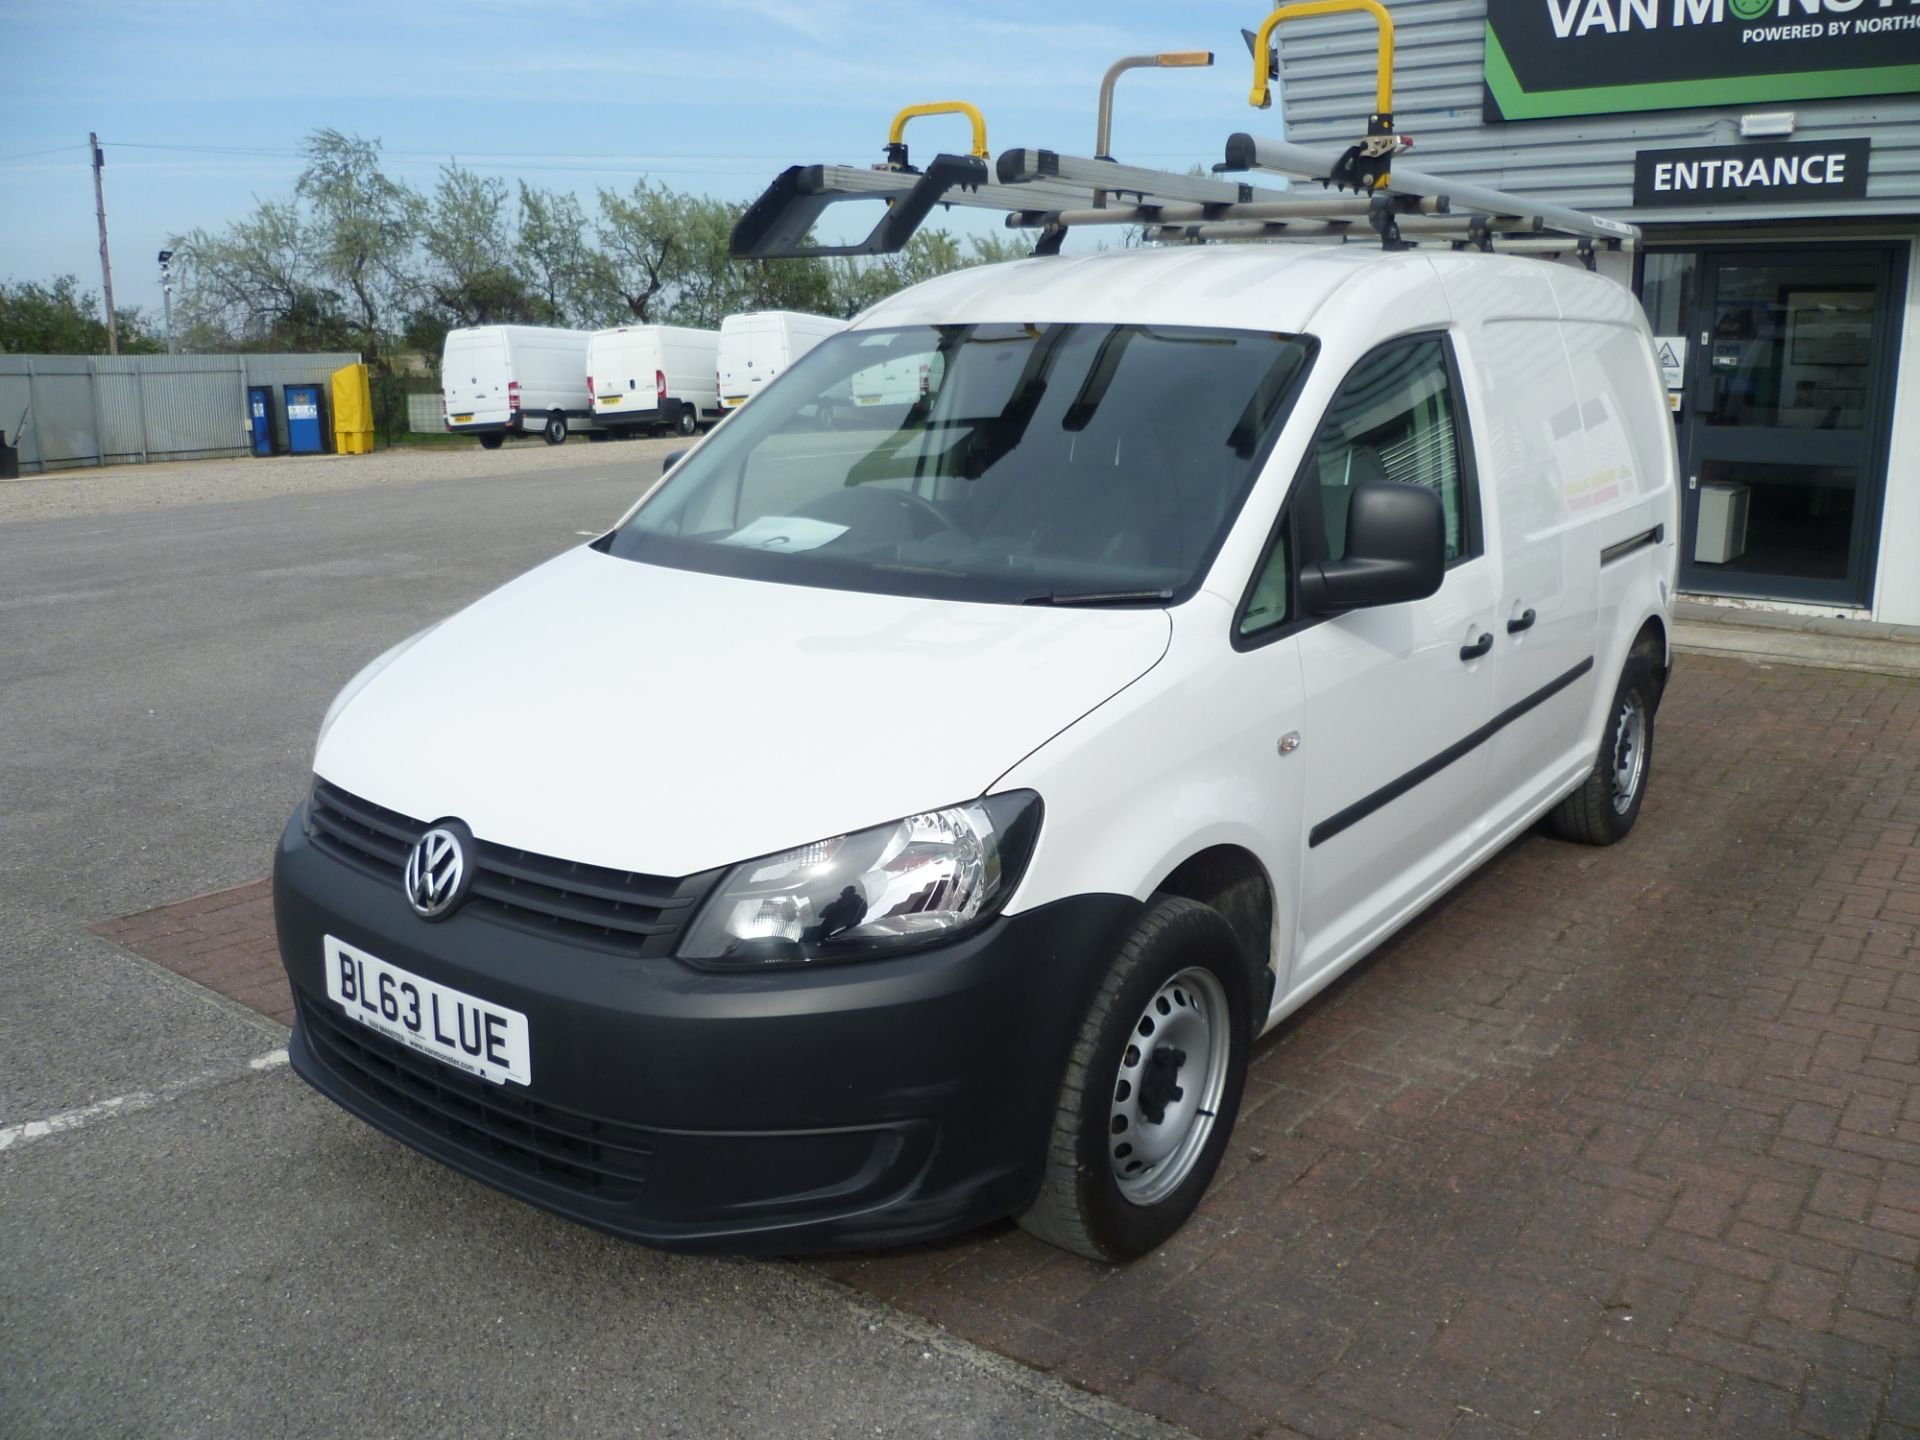 2014 Volkswagen Caddy 1.6 BLUEMOTION 102PS STARTLINE EURO 5 (BL63LUE) Thumbnail 2